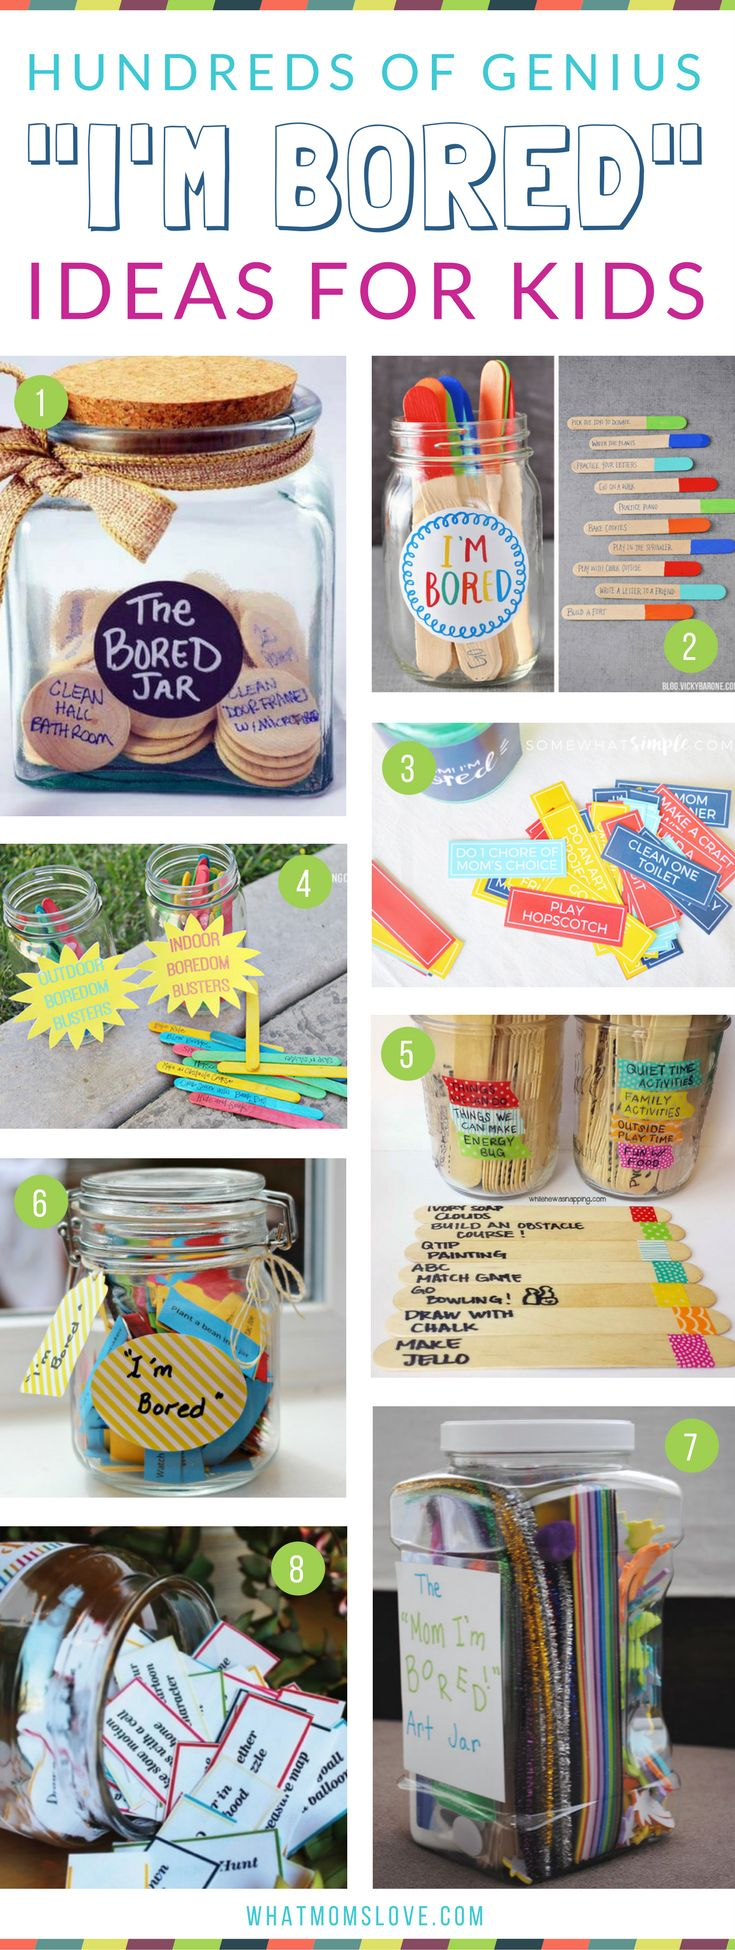 I'm Bored Jar Ideas For Kids | Boredom Busters to keep your kids occupied over the summer, school vacation breaks or when you're stuck inside. Plus more tips, tricks and hacks for an organized summer with your family!